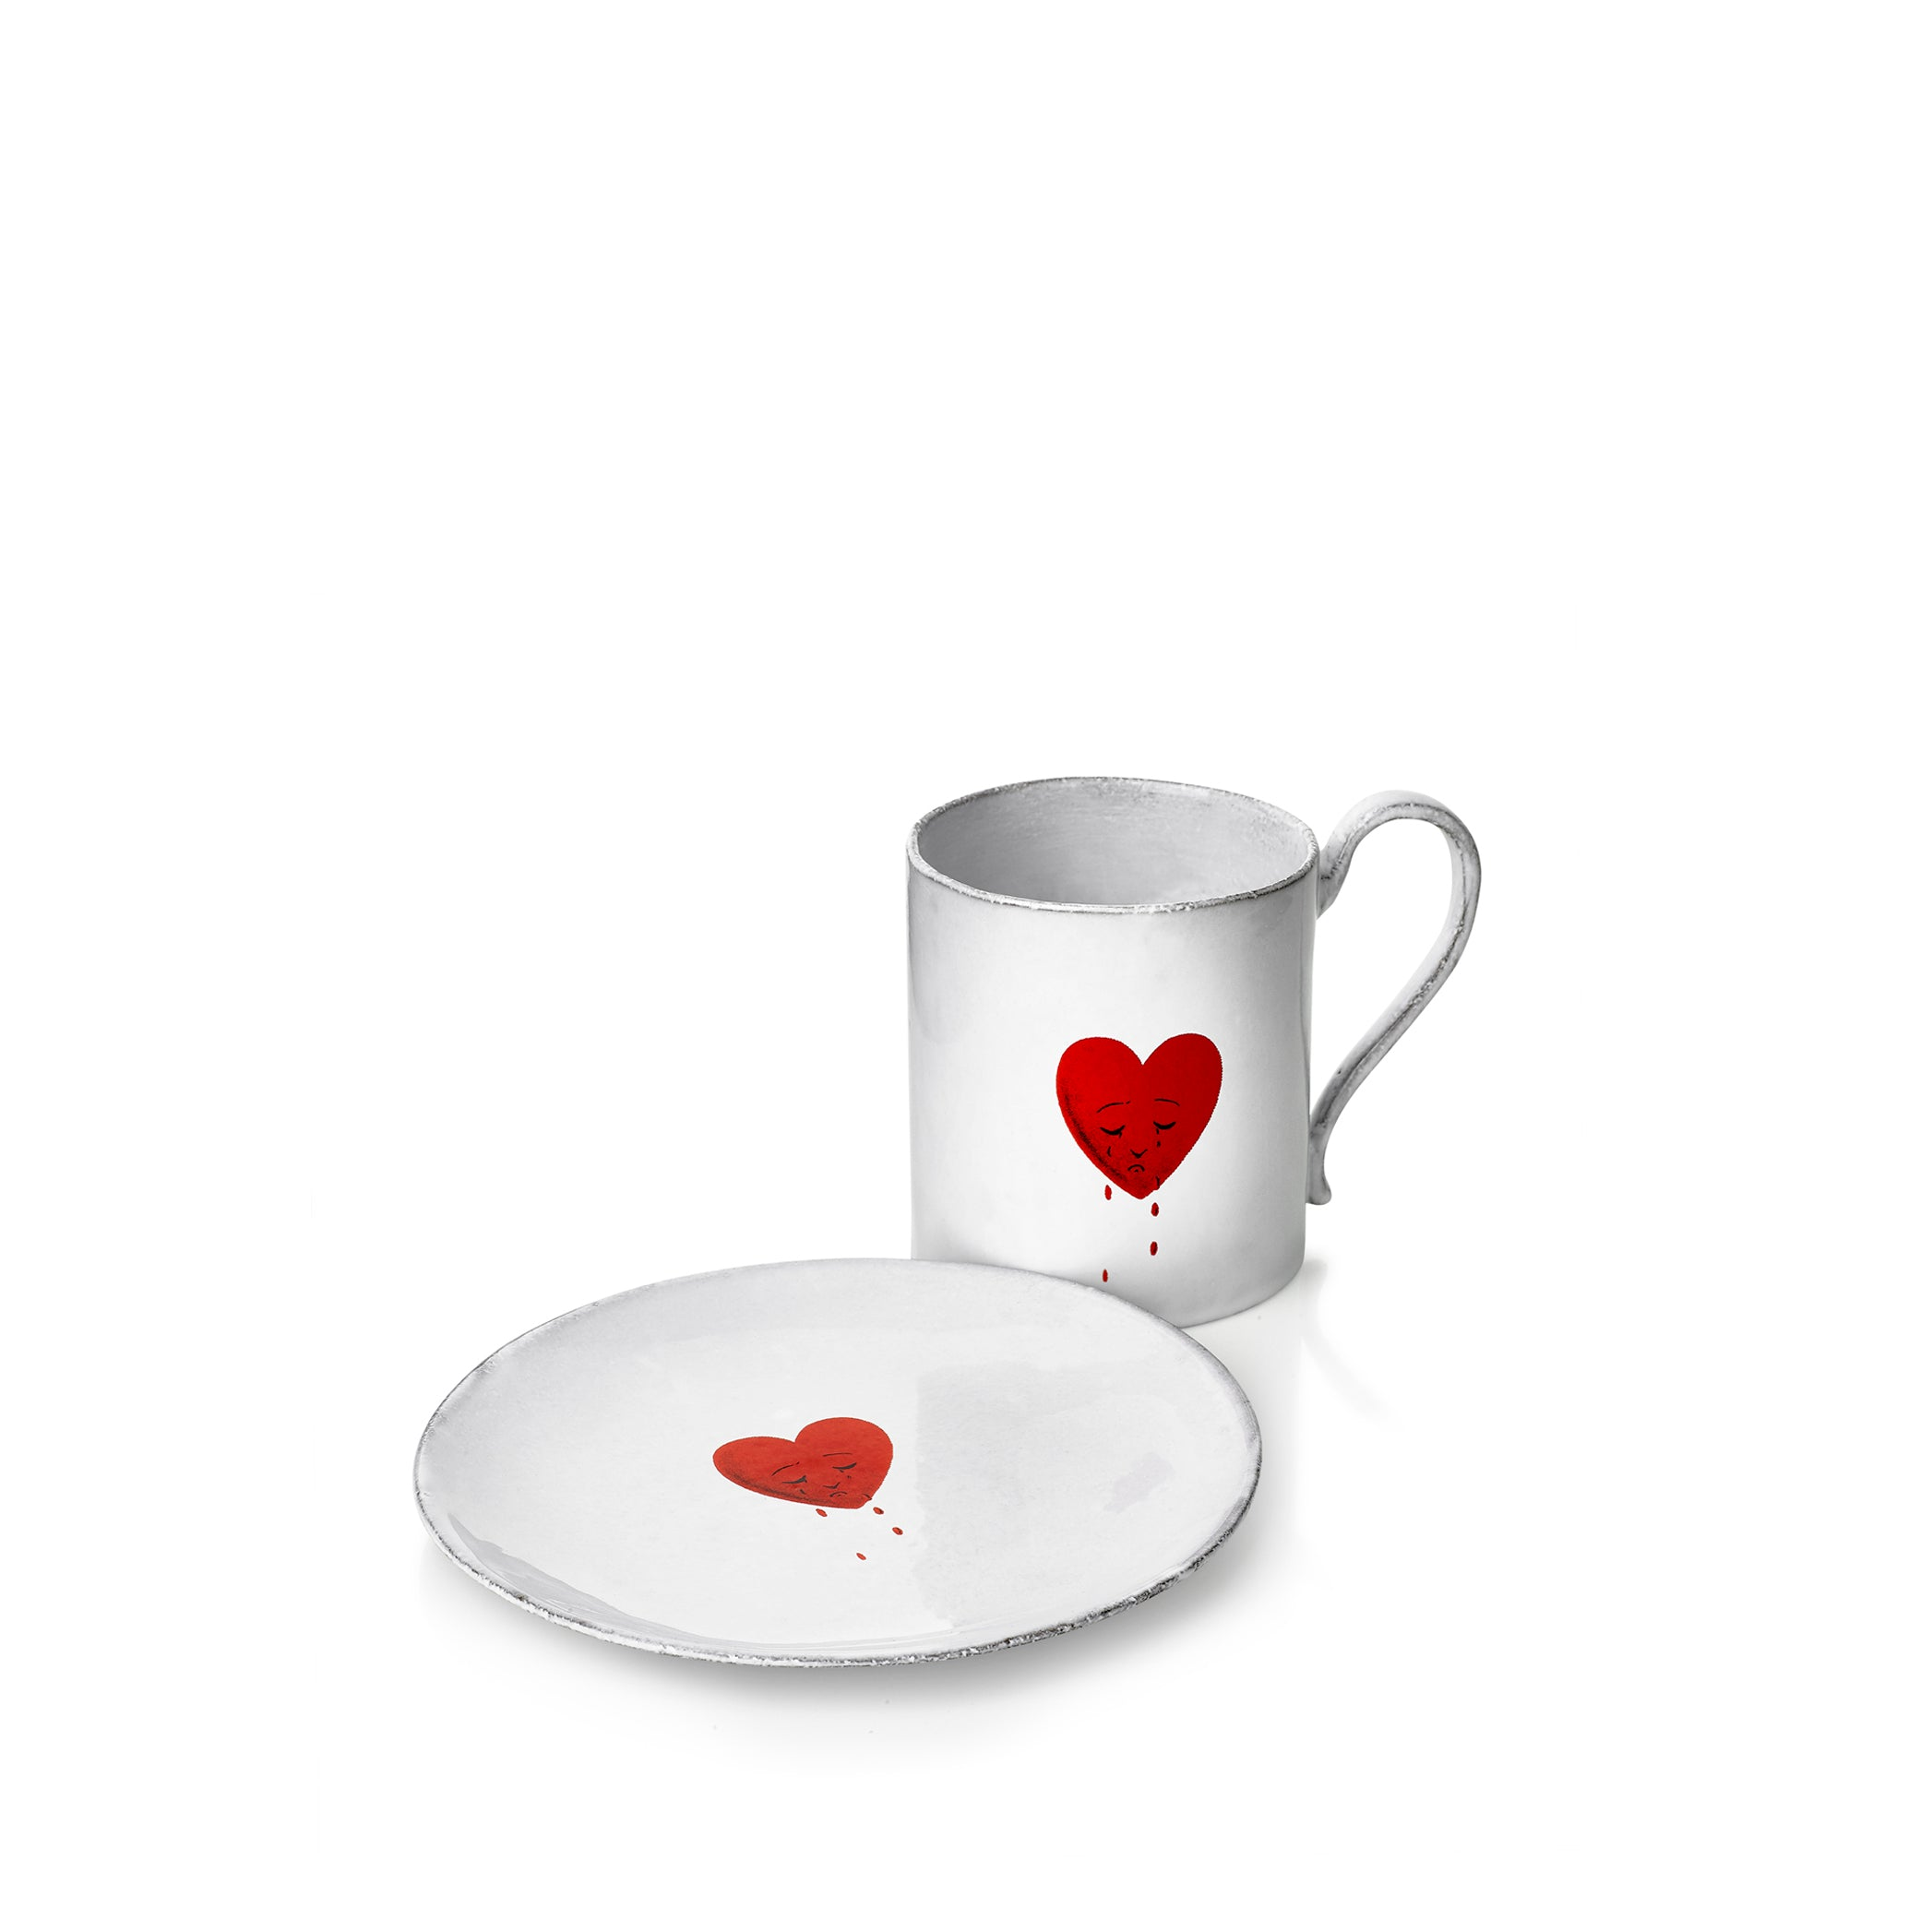 Crying Heart Saucer by Astier de Villatte